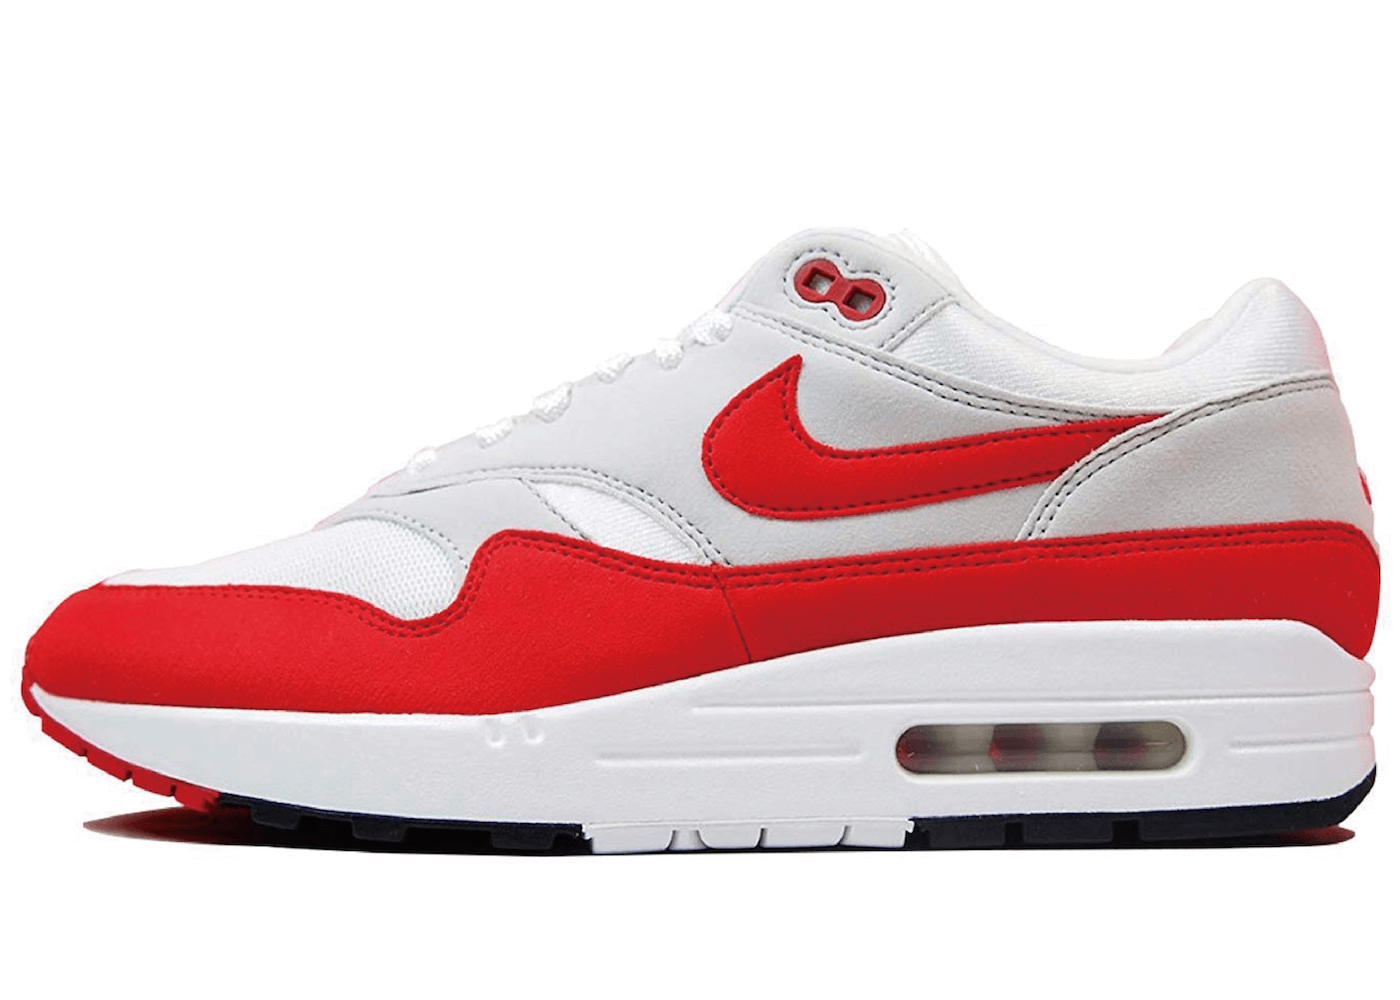 Air Max 1 Anniversary Red (2017)の写真